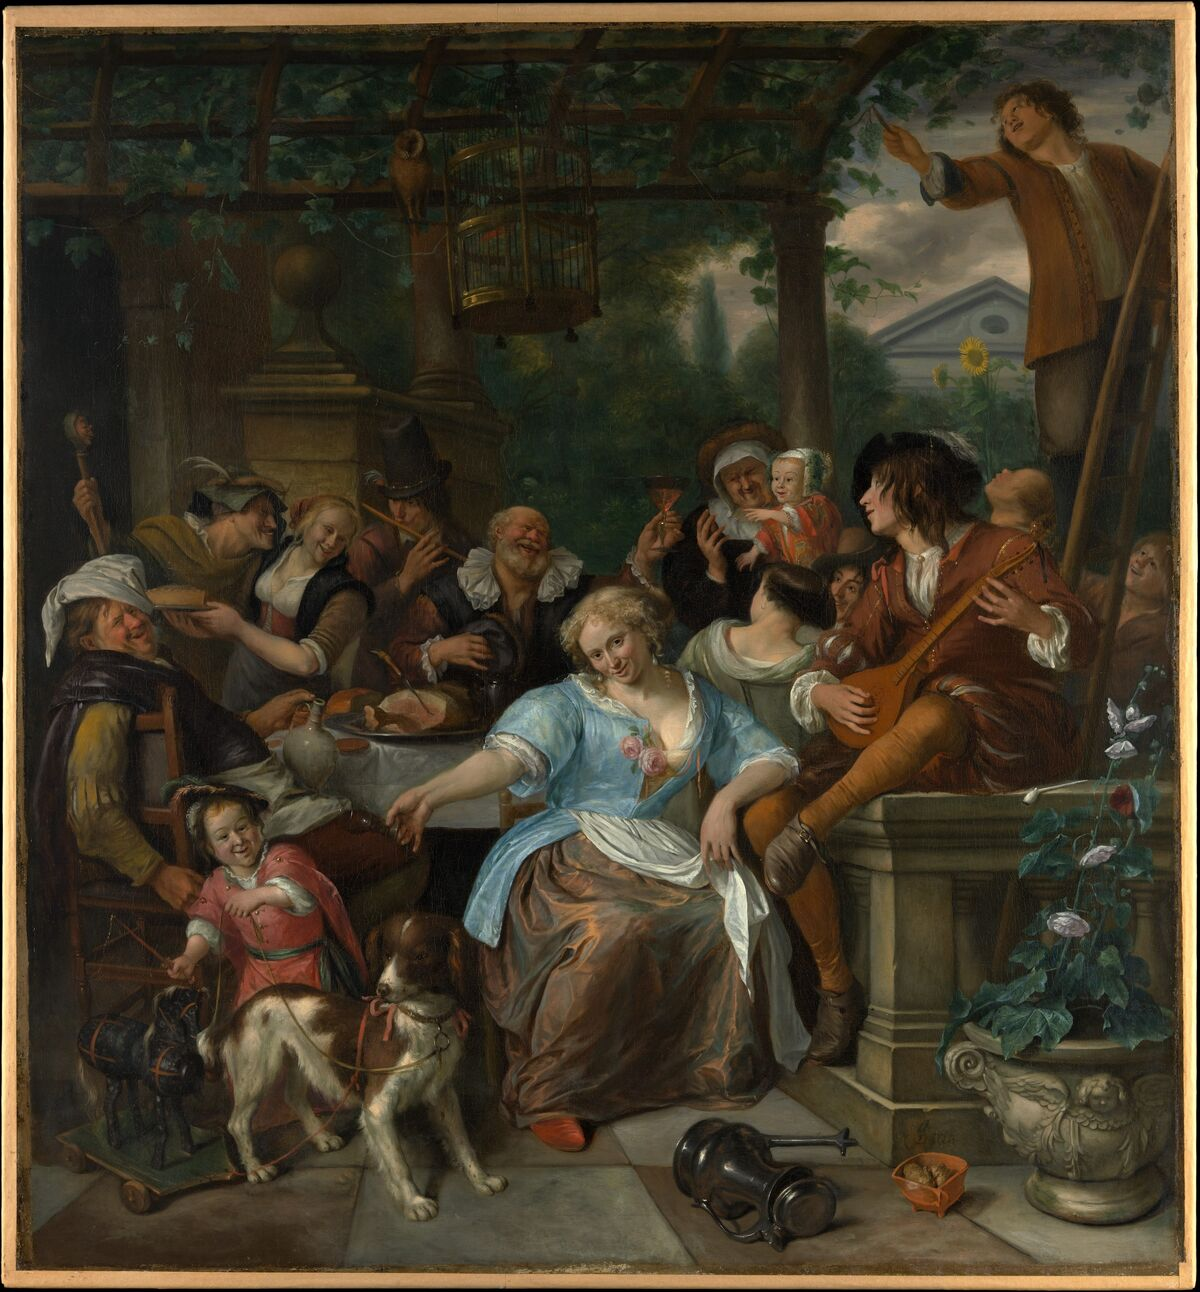 Jan Steen, Merry Company on a Terrace, ca. 1670. Courtesy of the Metropolitan Museum of Art.